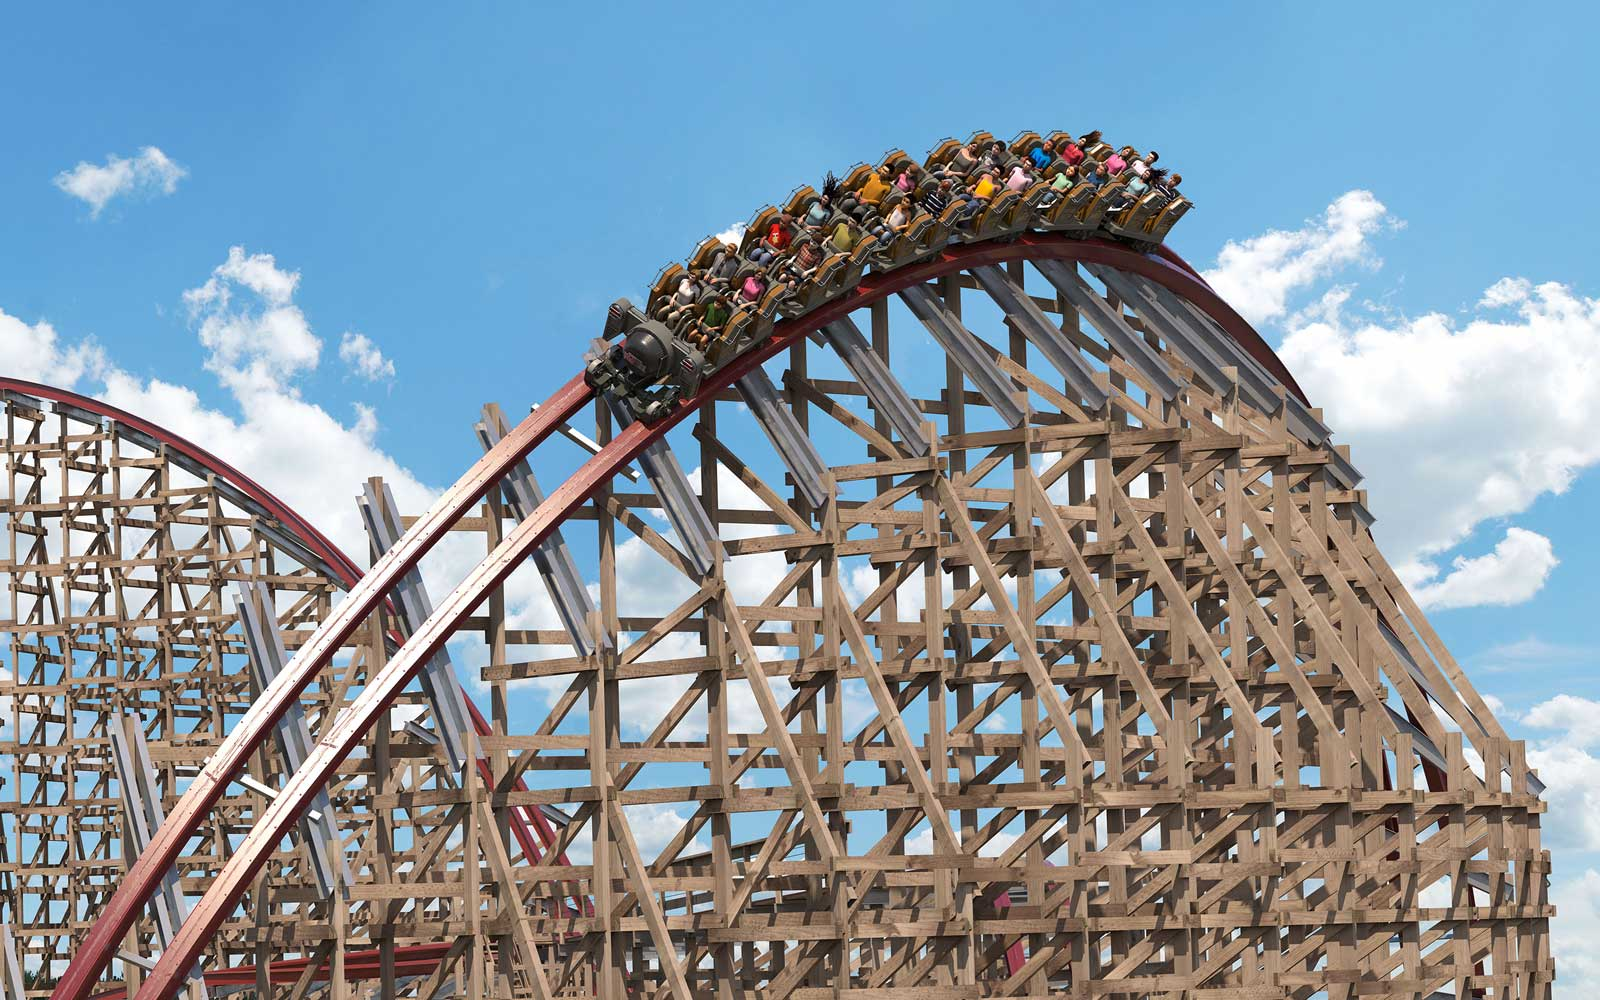 Steel Vengeance at Cedar Point